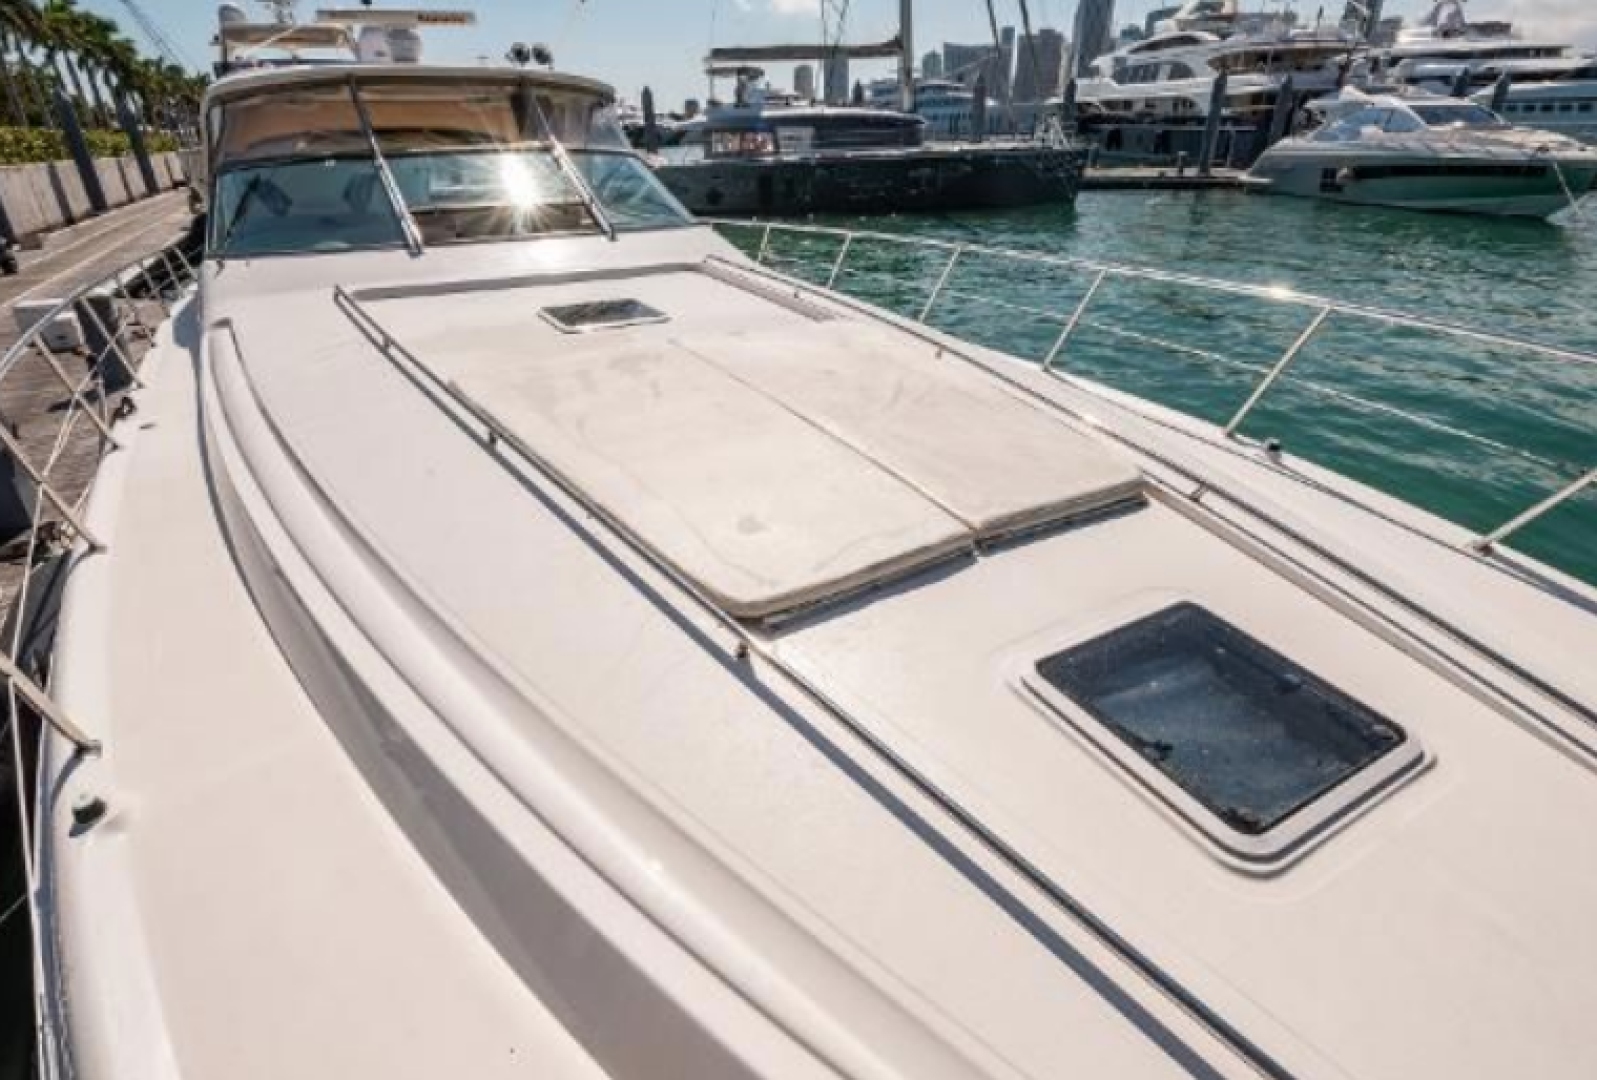 Sea Ray-540 Sundancer 2000-Bettsy Miami-Florida-United States-1562138 | Thumbnail